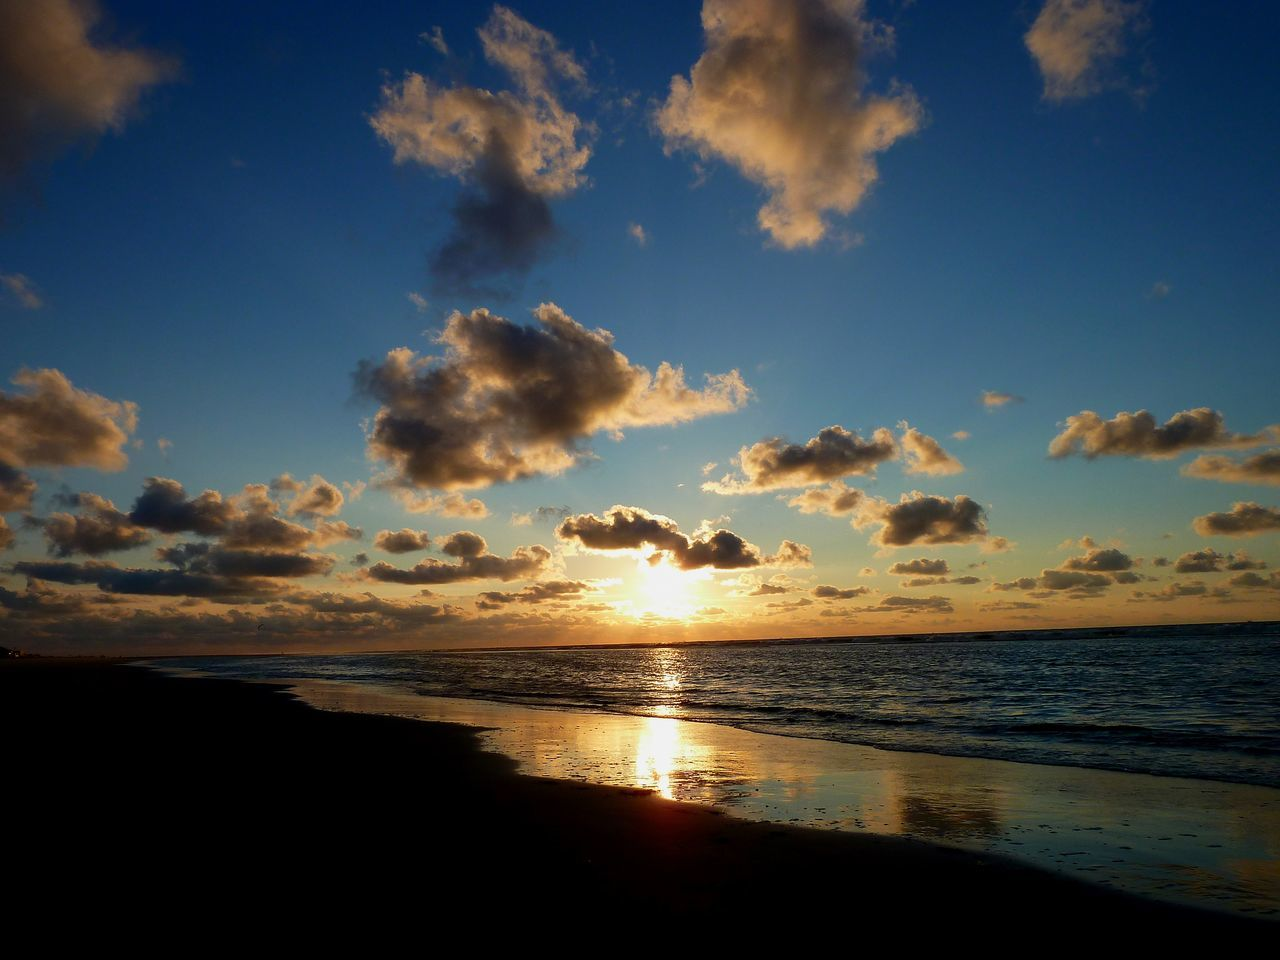 sea, sunset, sky, nature, idyllic, beauty in nature, scenics, beach, water, tranquility, landscape, no people, outdoors